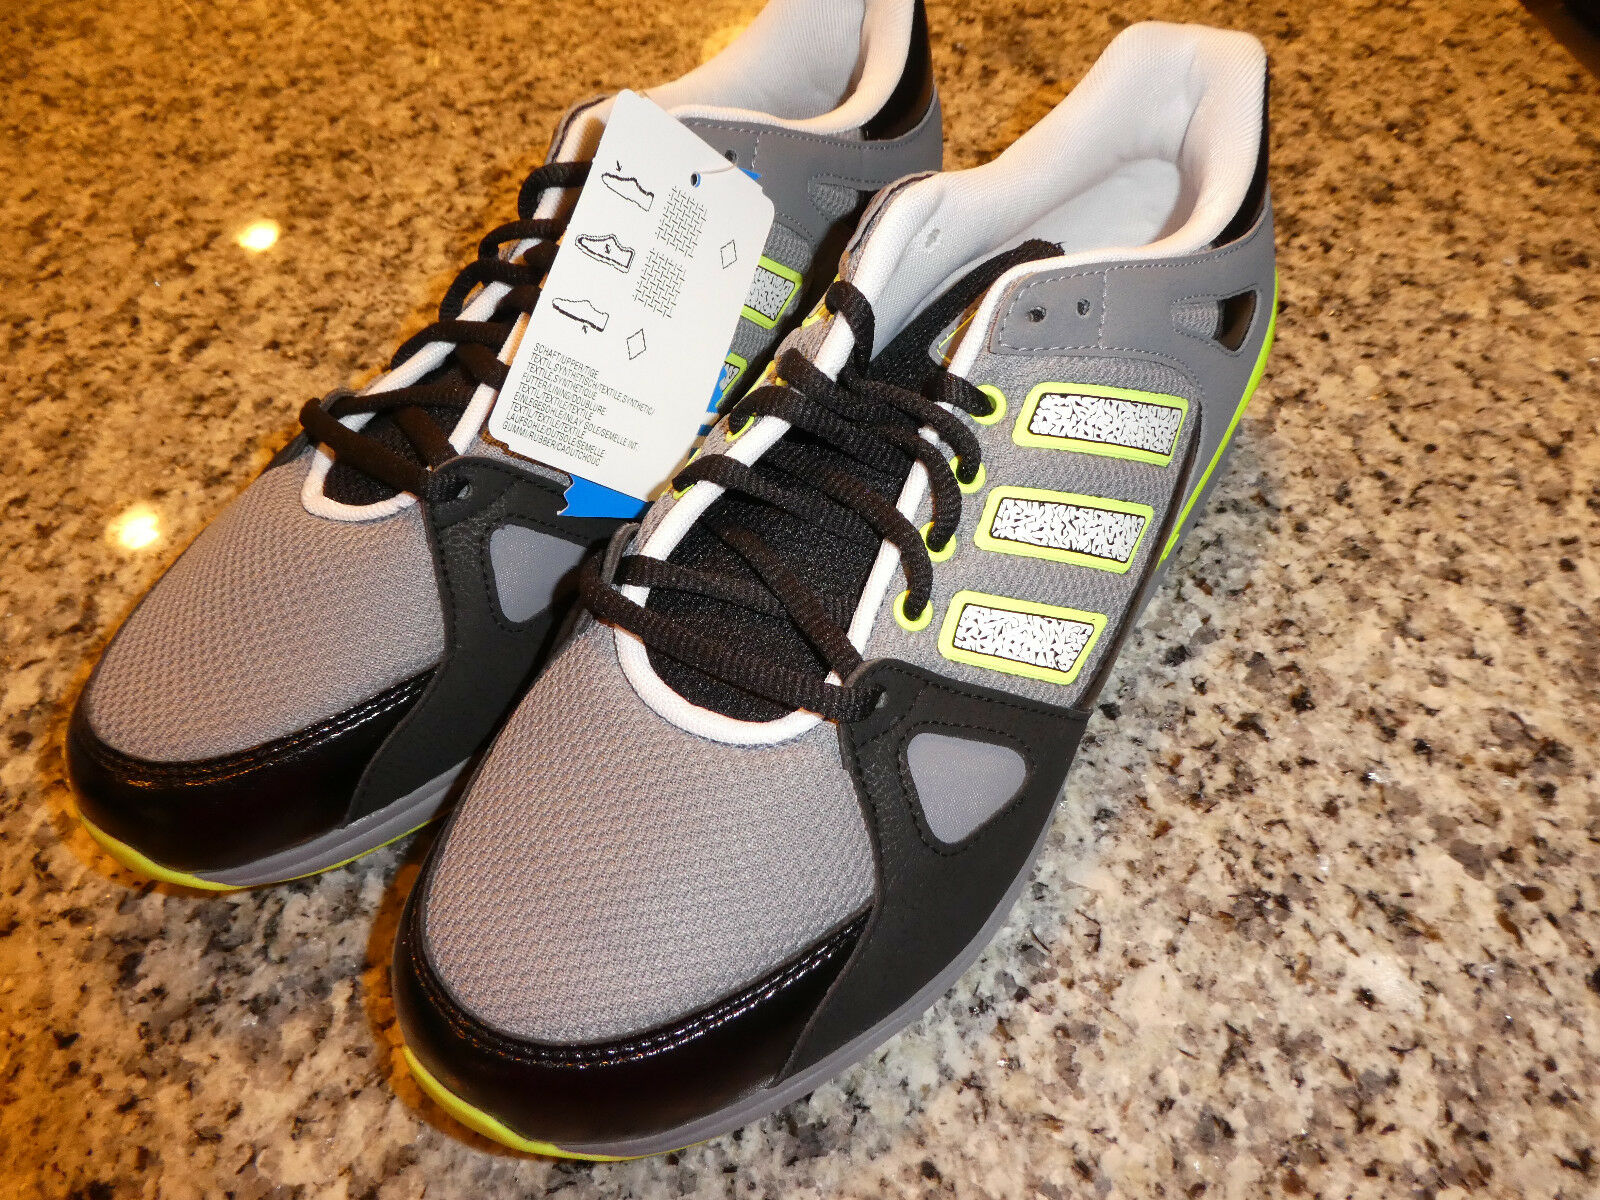 Adidas ZX789 shoes mens new sneakers G20775 Cheap and beautiful fashion